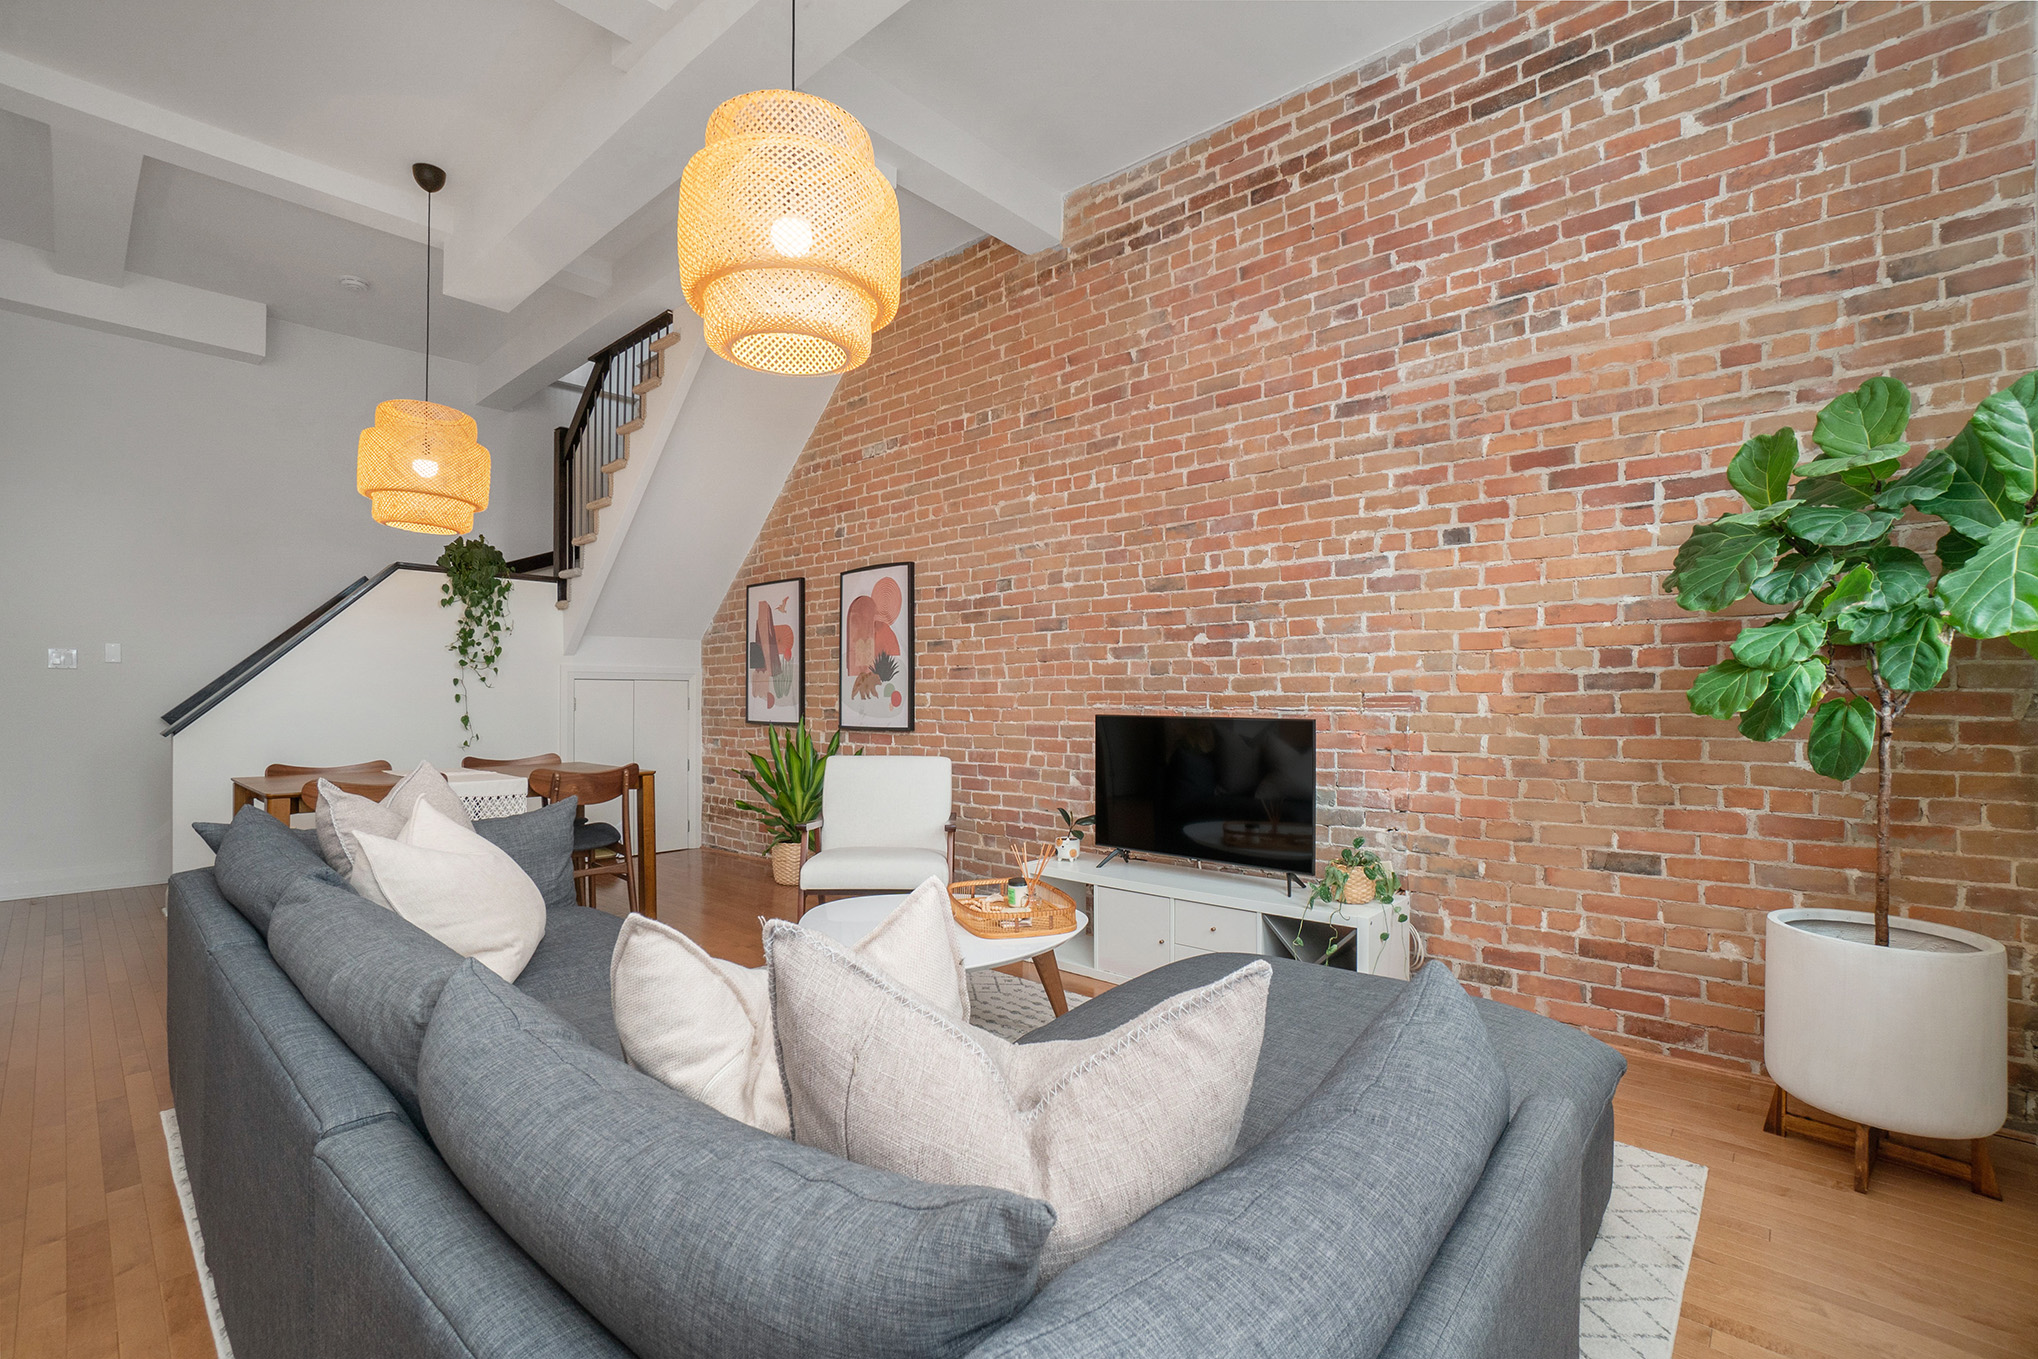 Open Concept main floor with 12ft ceilings, exposed brick wall, large kitchen with island, dining space, powder room, storage